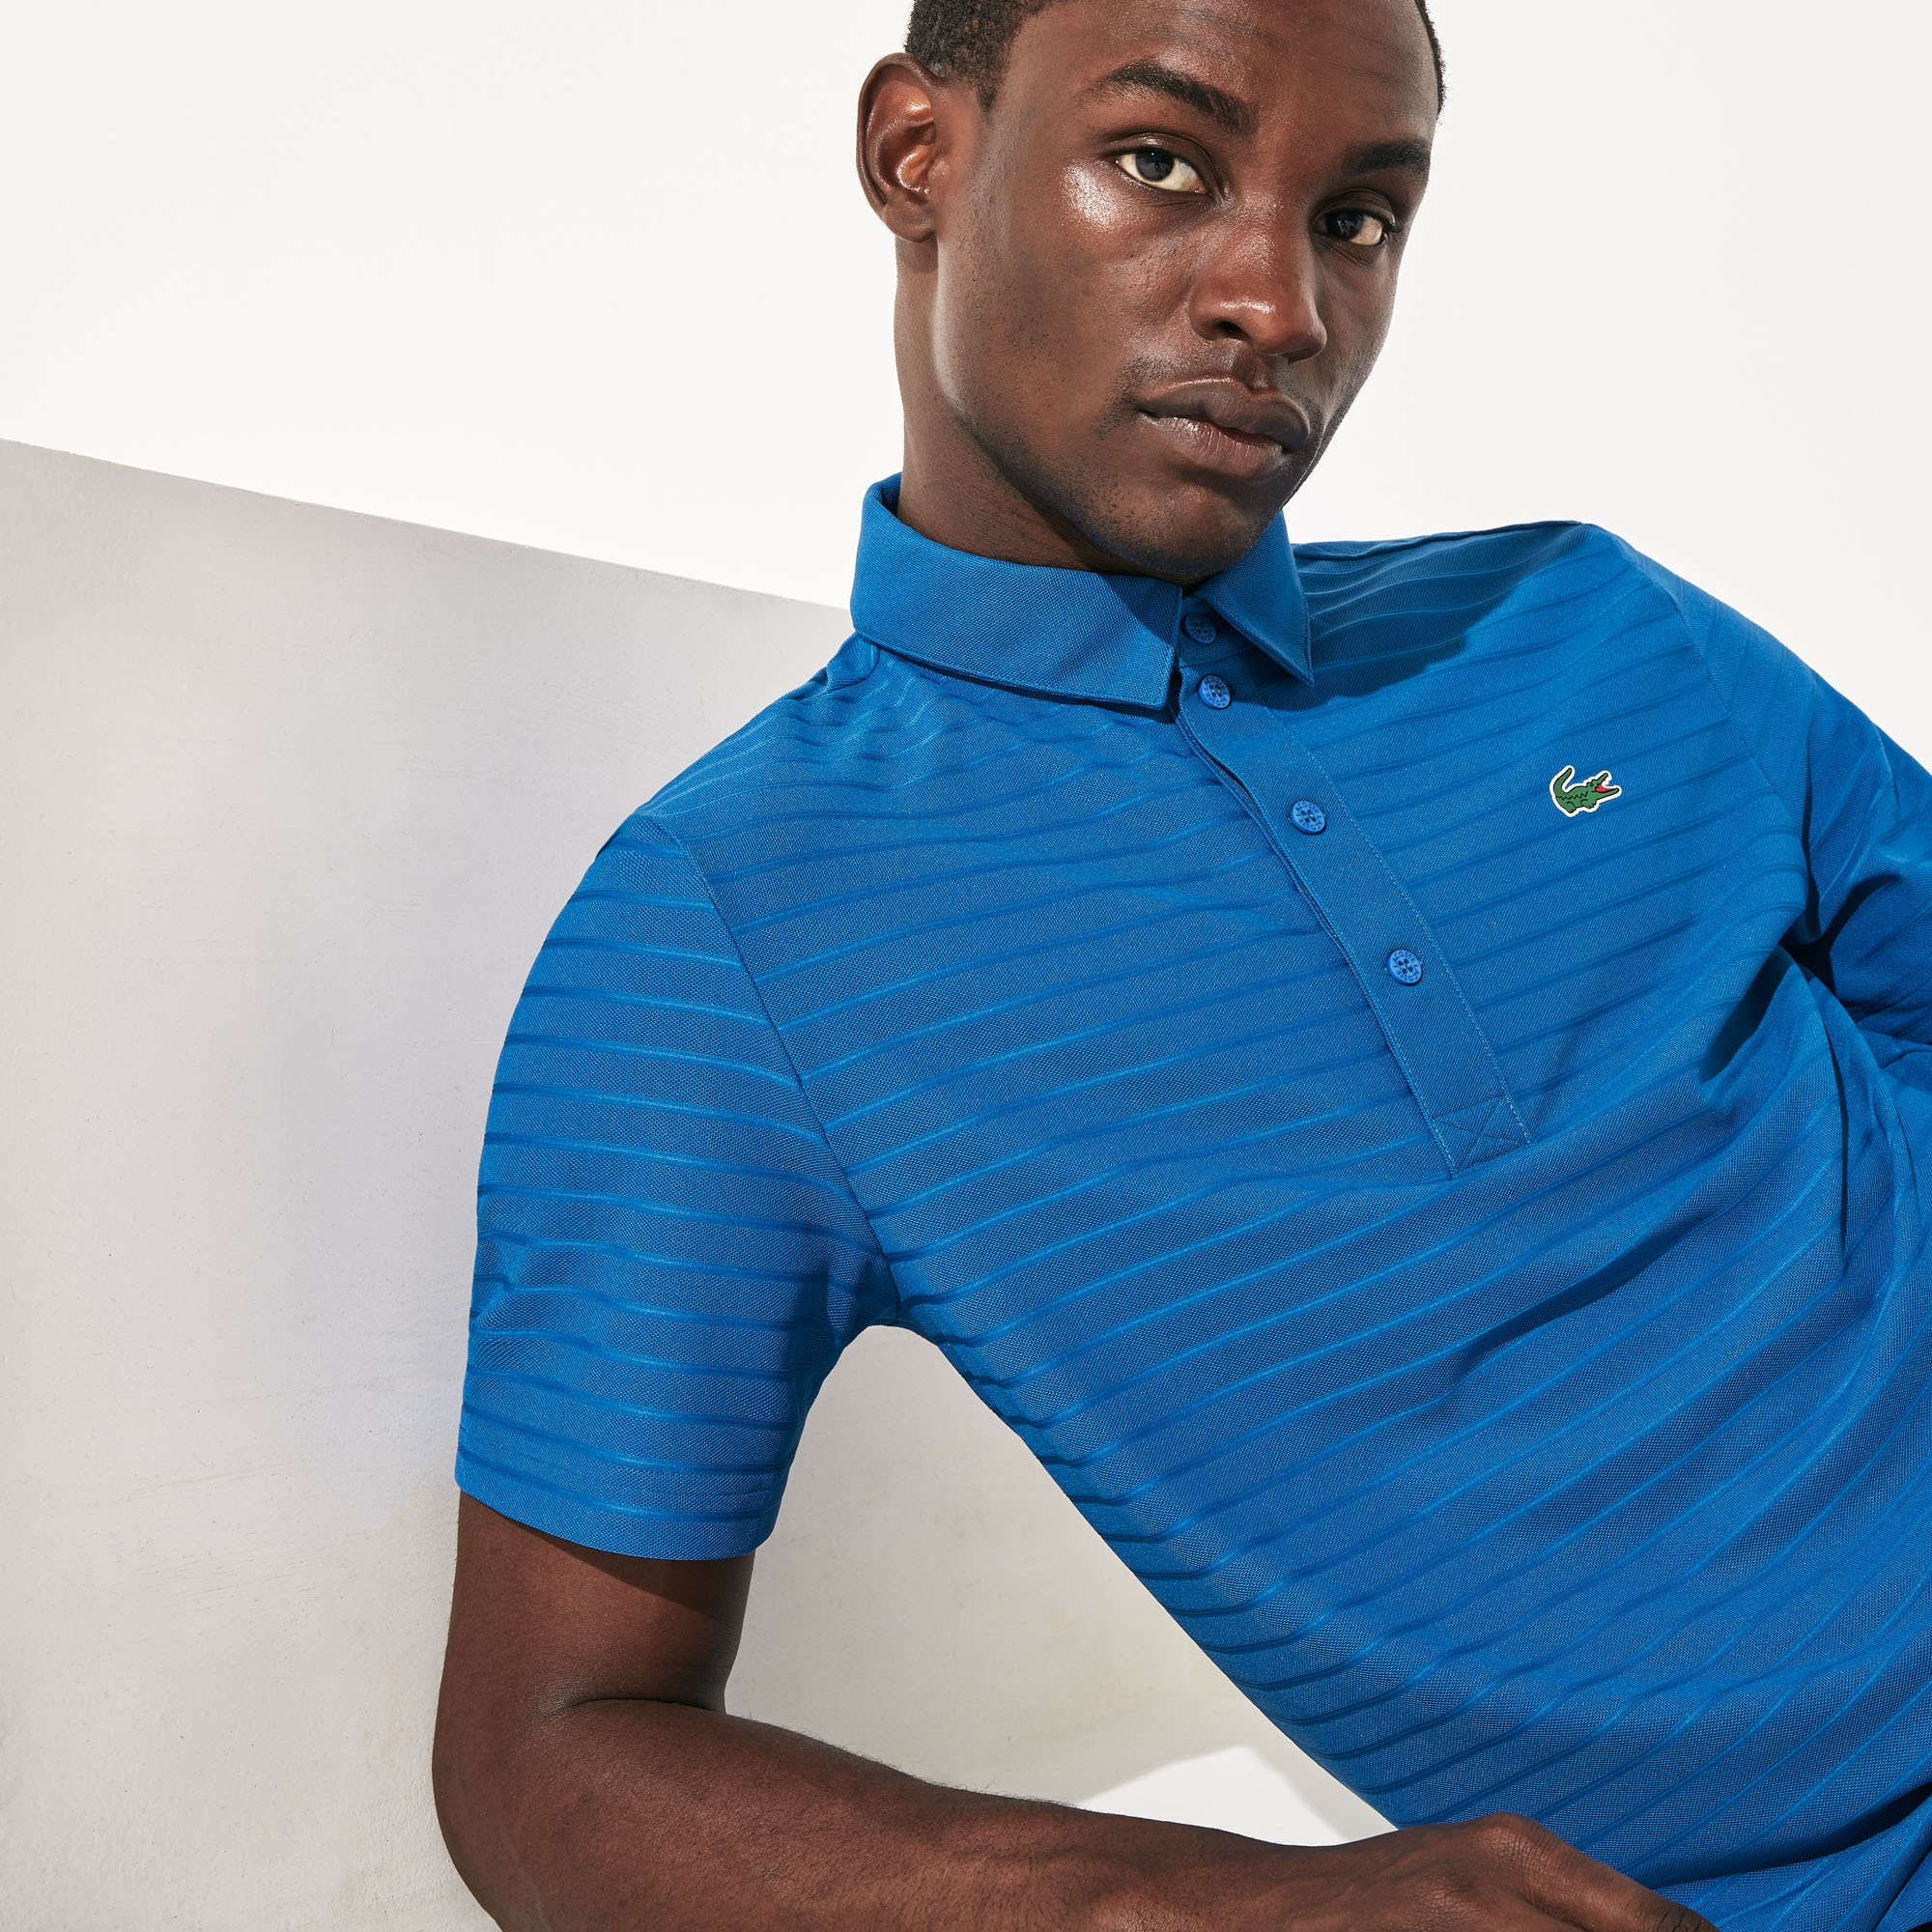 라코스테 Lacoste Mens SPORT Textured Breathable Golf Polo Shirt,Blue - US5